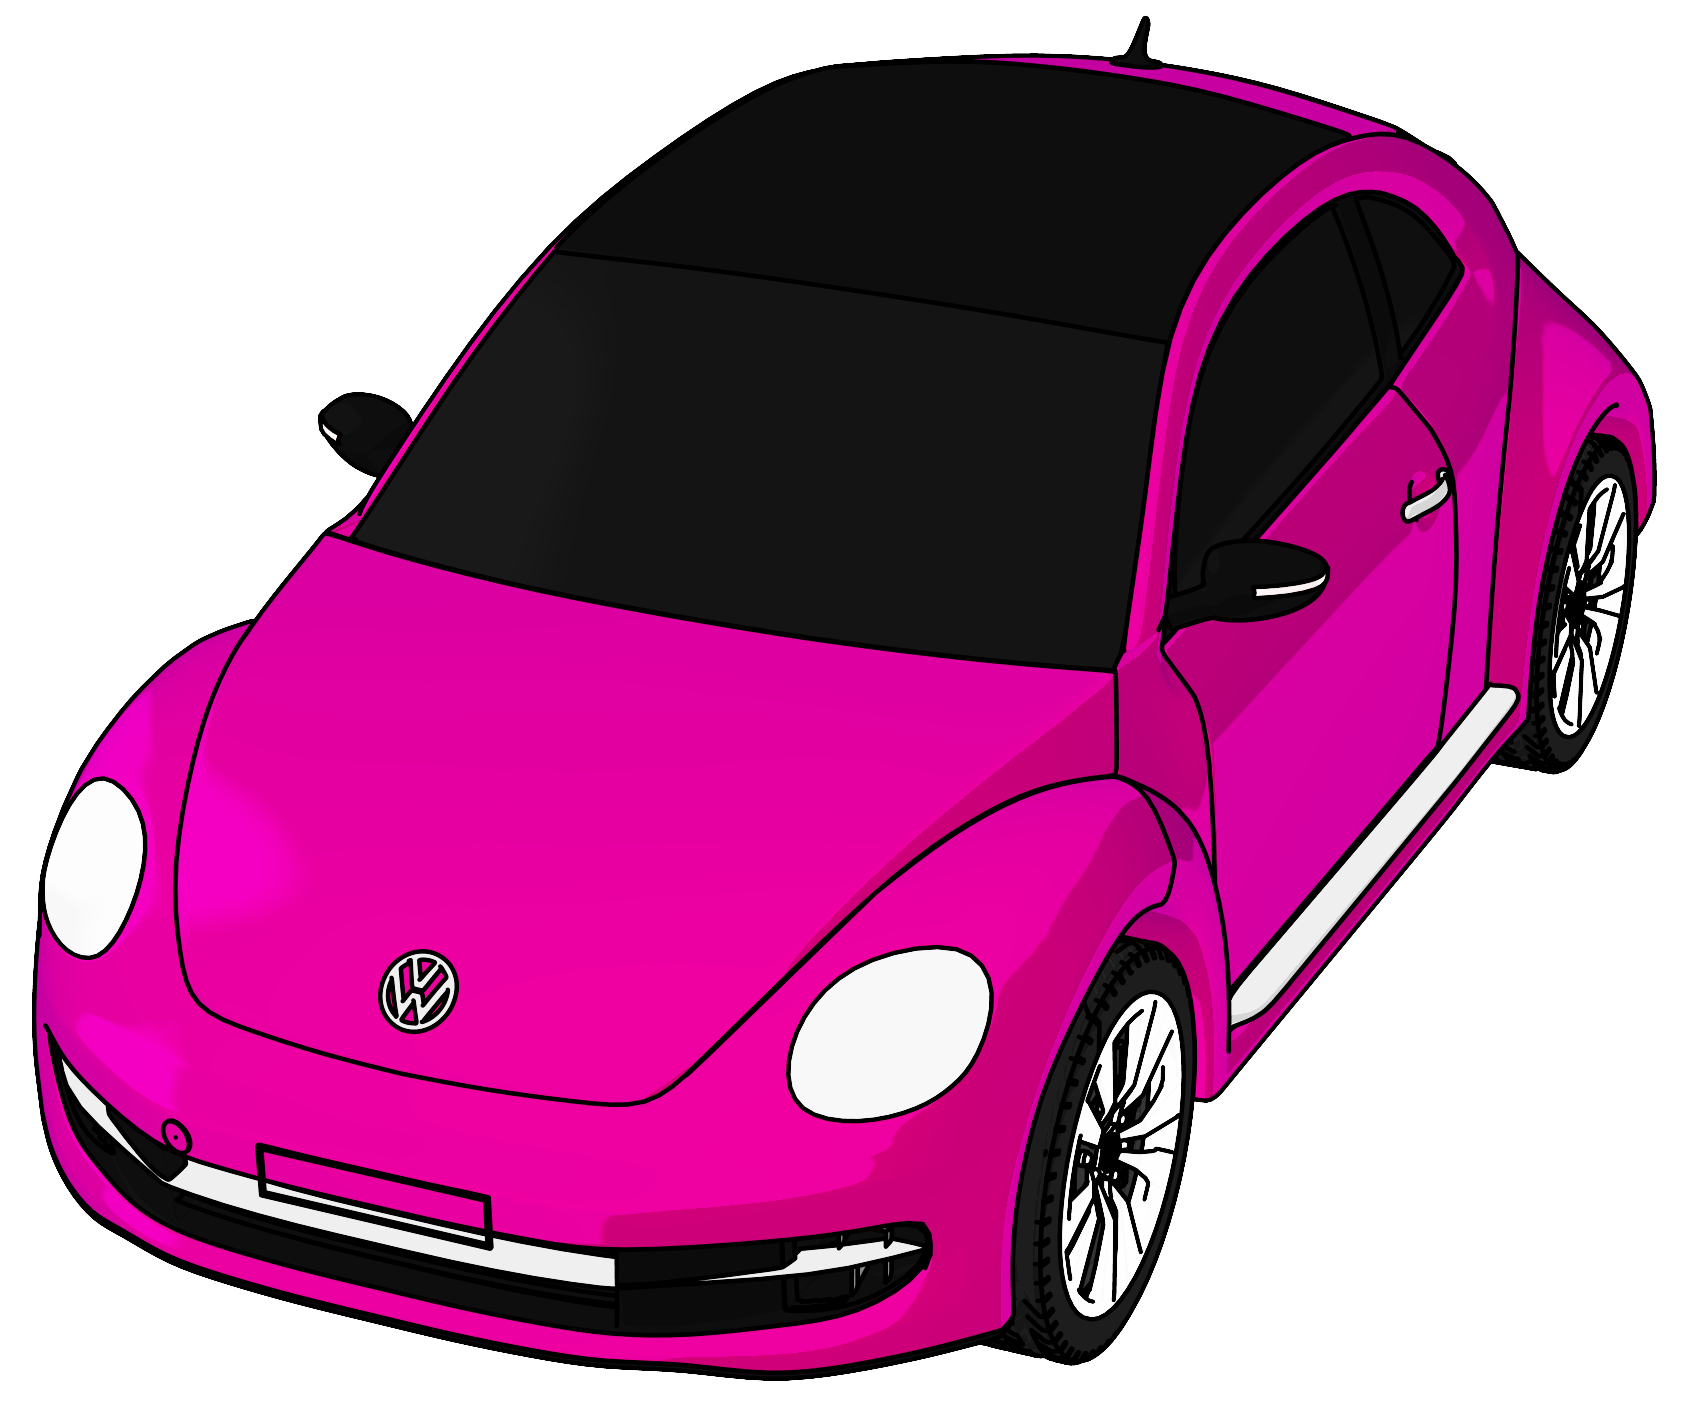 Bug car clipart svg library download Volkswagen Beetle Clipart at GetDrawings.com   Free for personal use ... svg library download